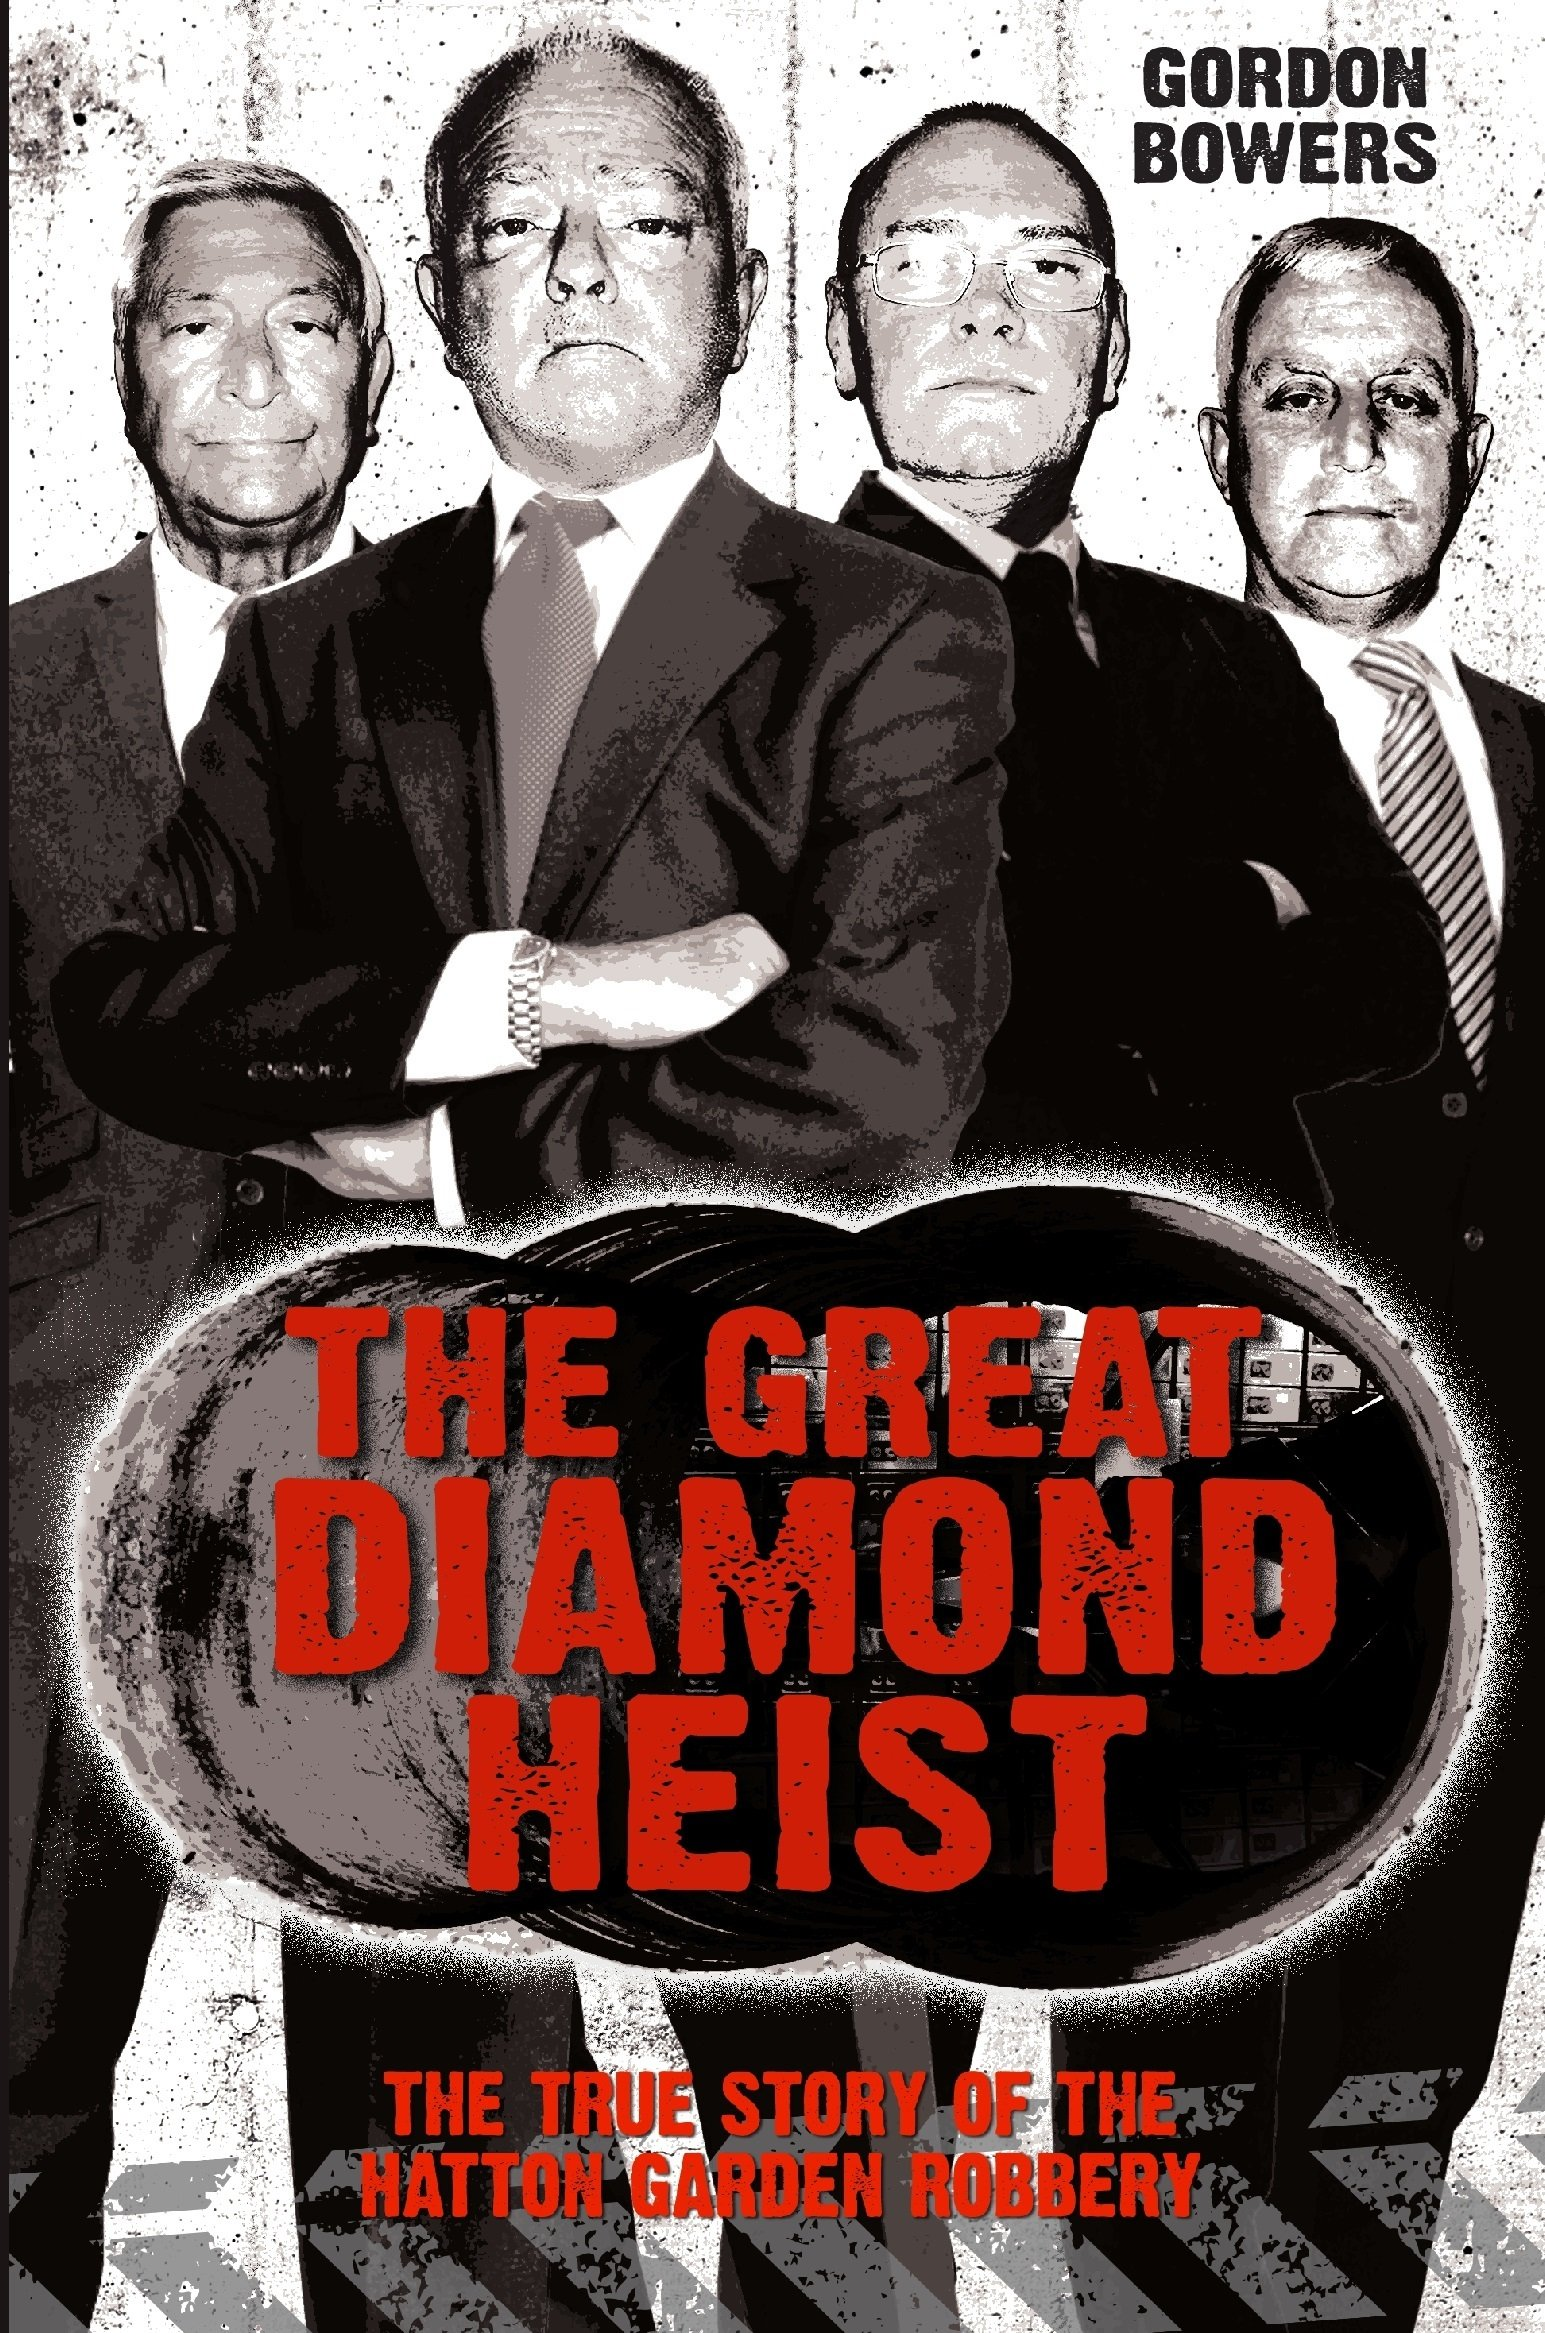 The Great Diamond Heist The Incredible True Story Of The Hatton Garden Robbery The True Story Of The Hatton Garden Robbery Amazon Co Uk Gordon Bowers 9781784189785 Books